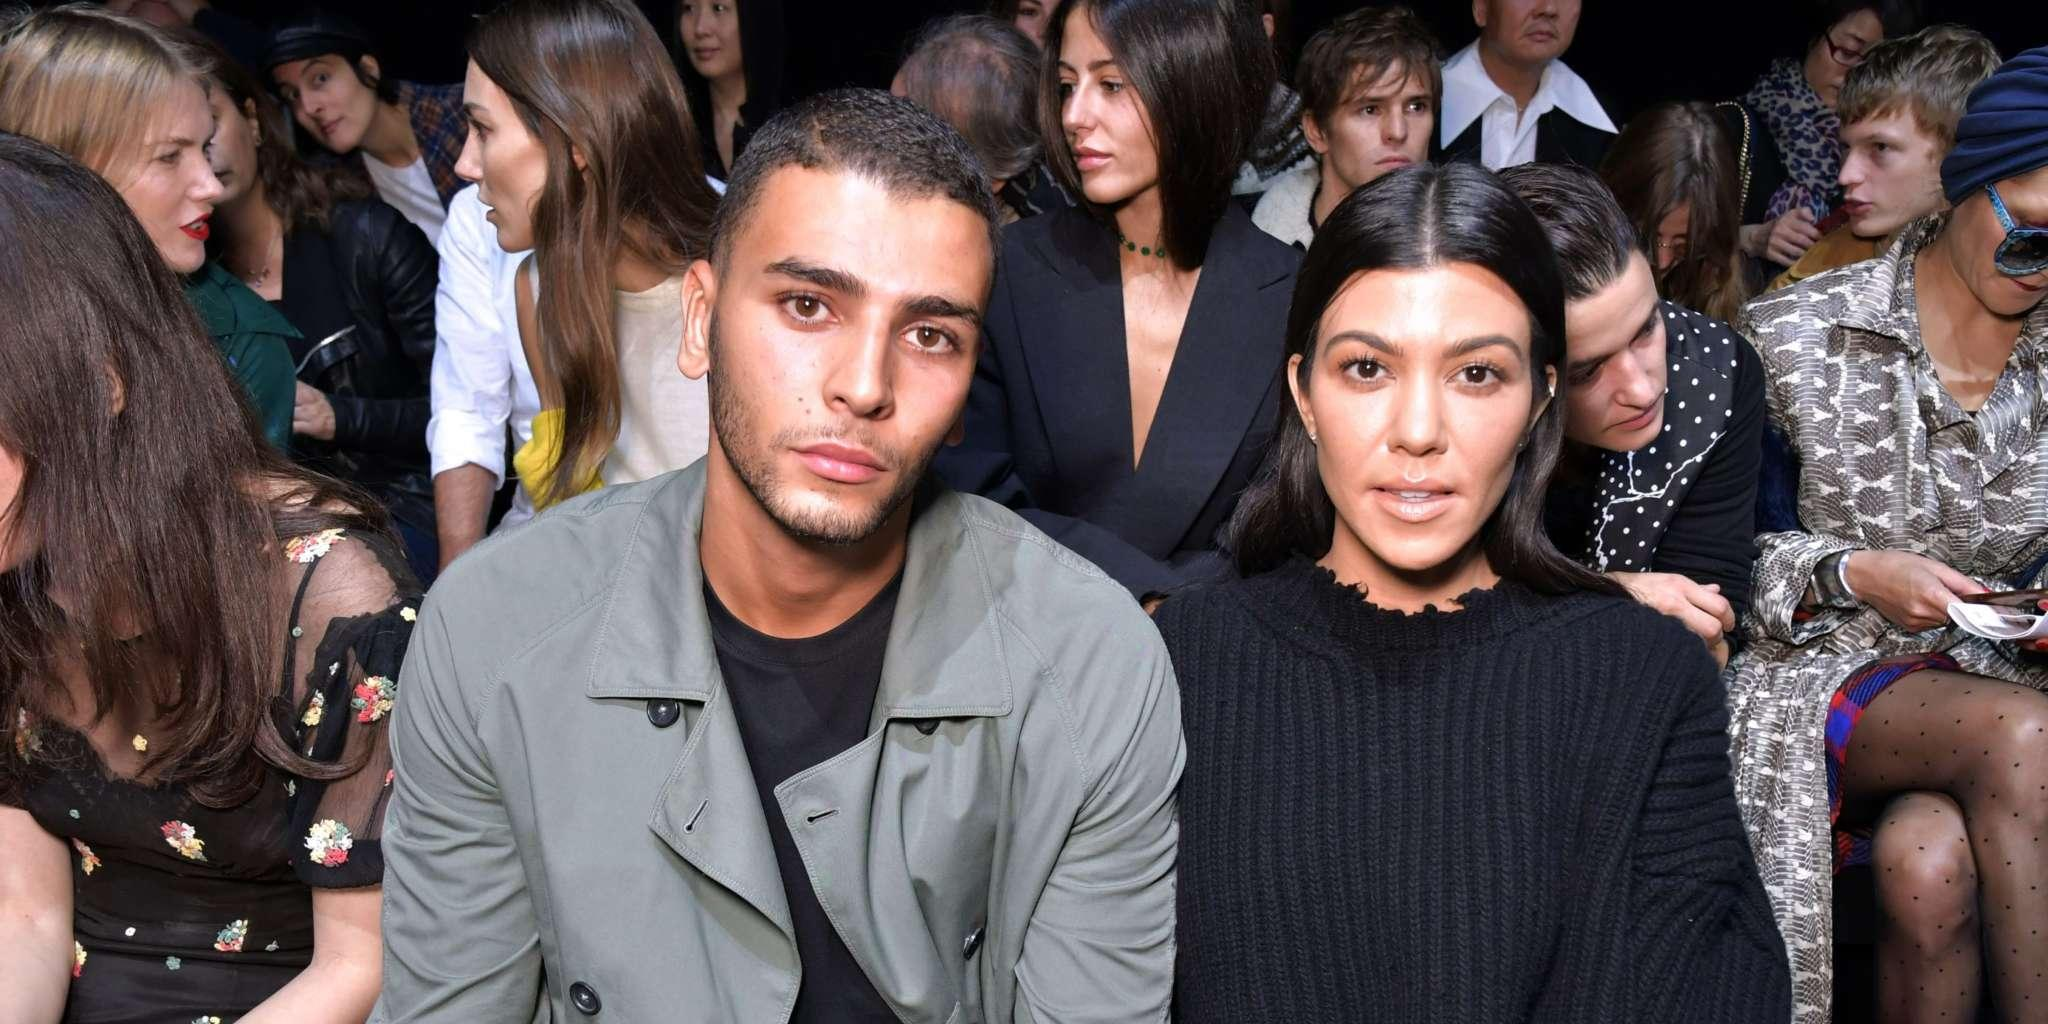 KUWK: Younes Bendjima Spends Christmas With The Kardashians - Shares Sweet Moment With Ex Kourtney's Daughter - See The Clip!